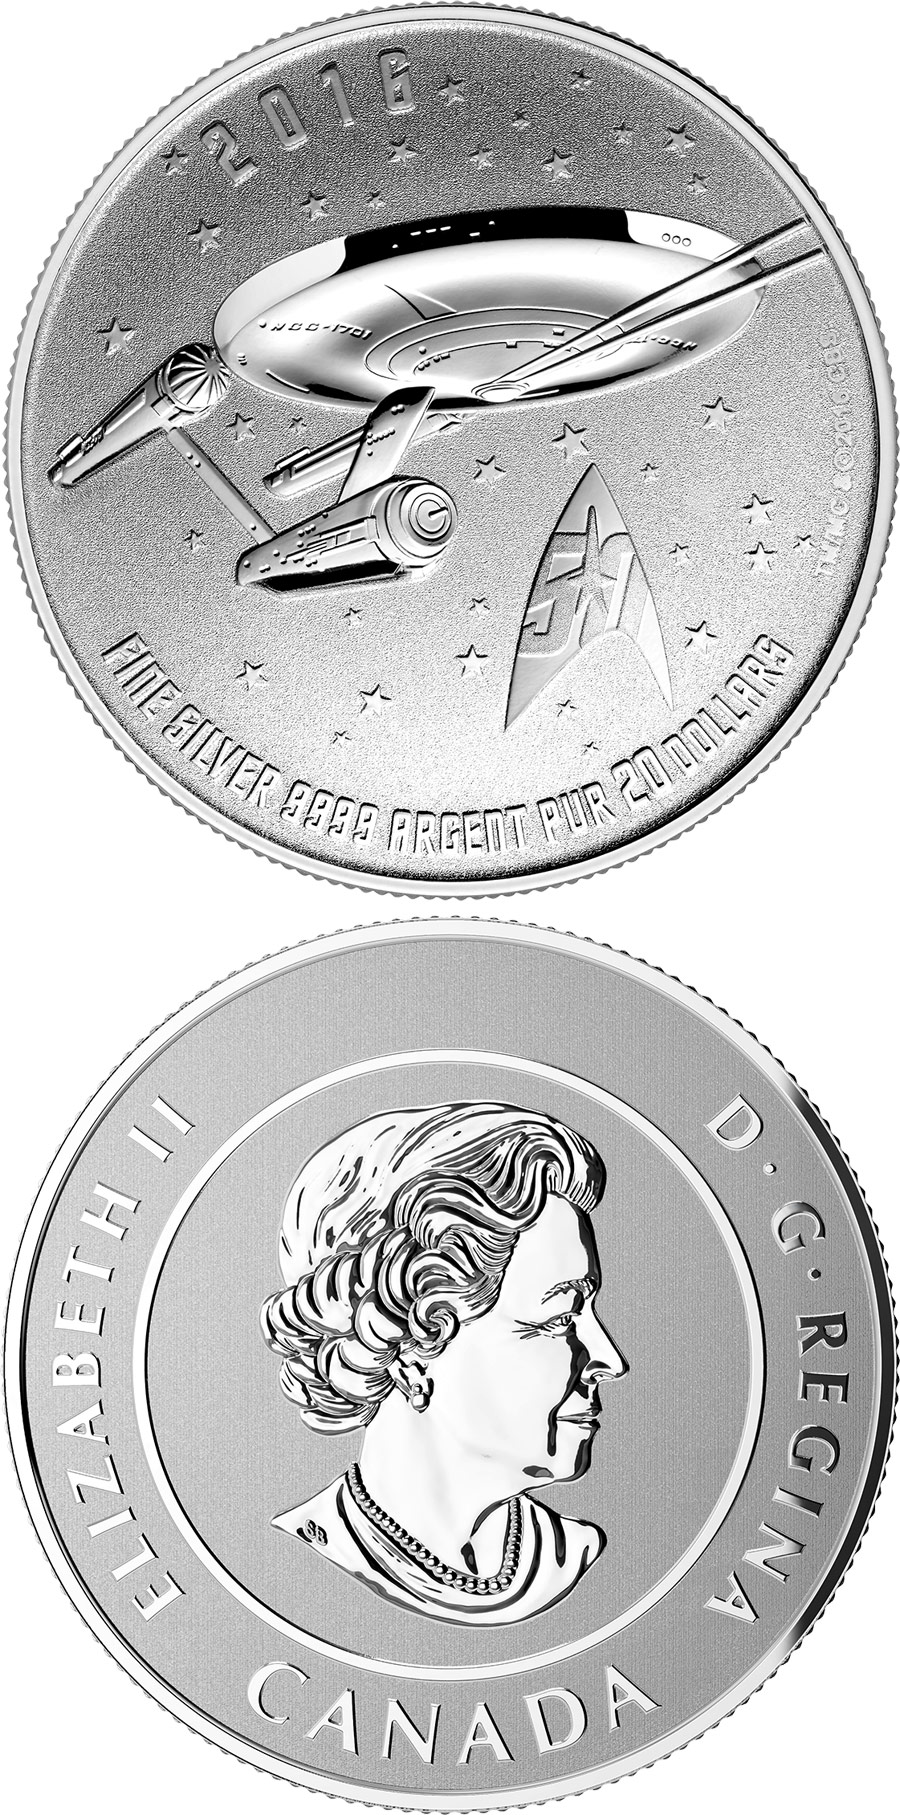 Image of 20 dollars coin - Star Trek Enterprise | Canada 2016.  The Silver coin is of BU quality.